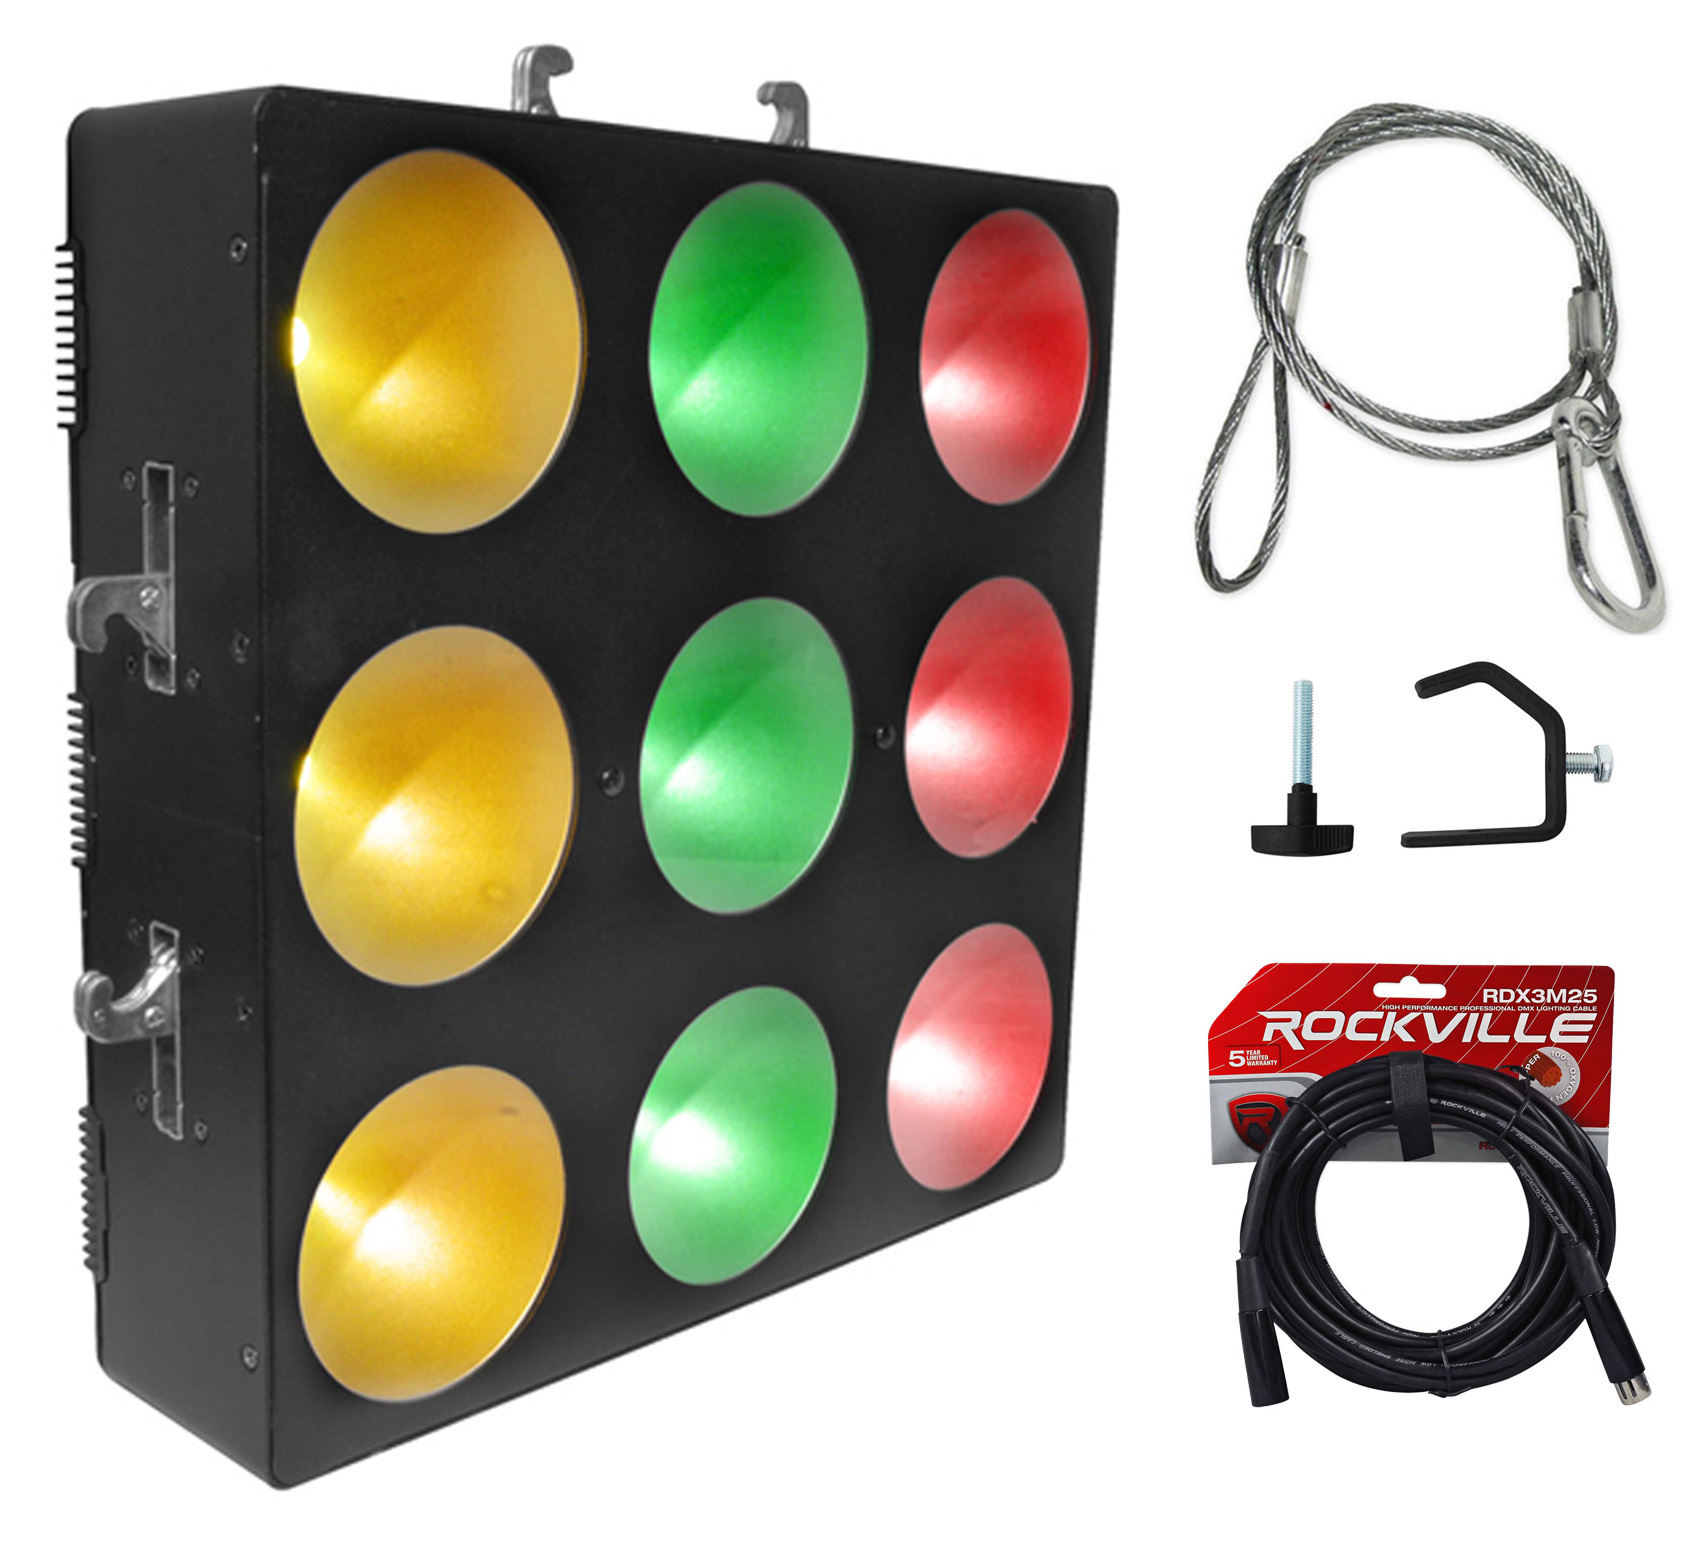 Chauvet DJ CORE 3x3 COB LED Pixel Mapping Wash Light+Clamp+Harness+DMX Cable